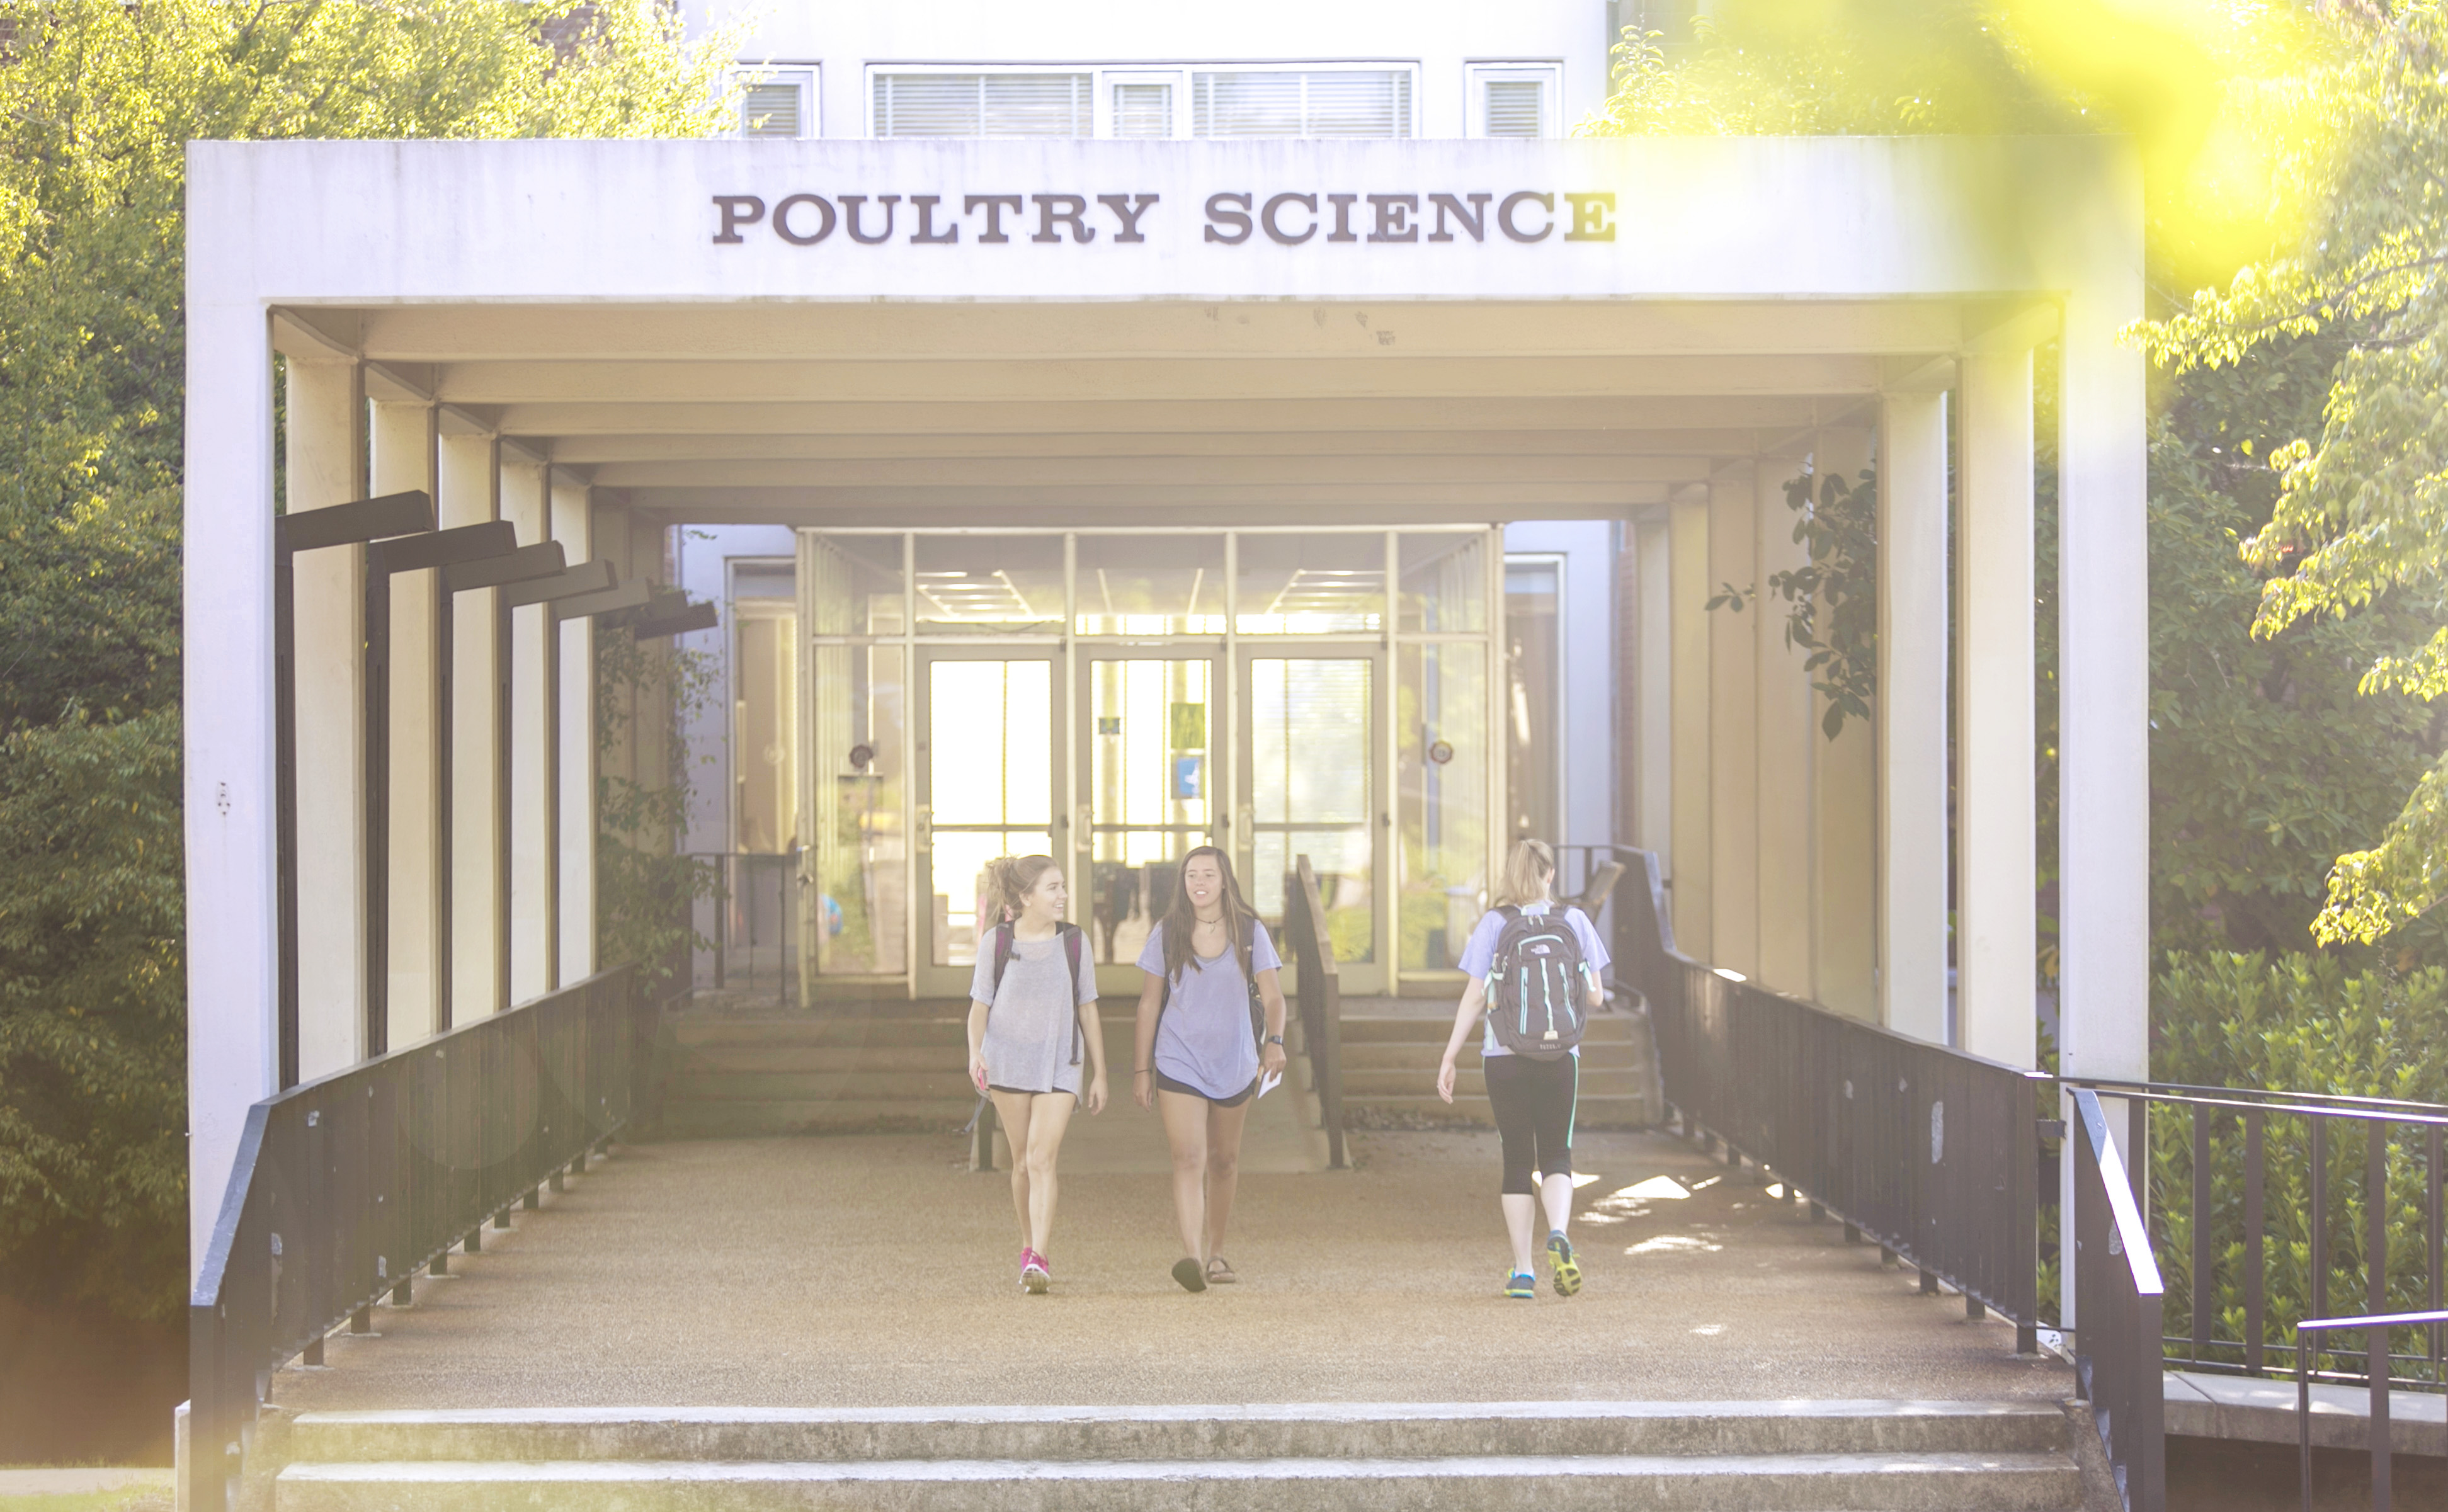 The $6.5 million in funding that USPOULTRY has provided to the UGA Department of Poultry Science supports both life-changing academic programs and world-changing research.